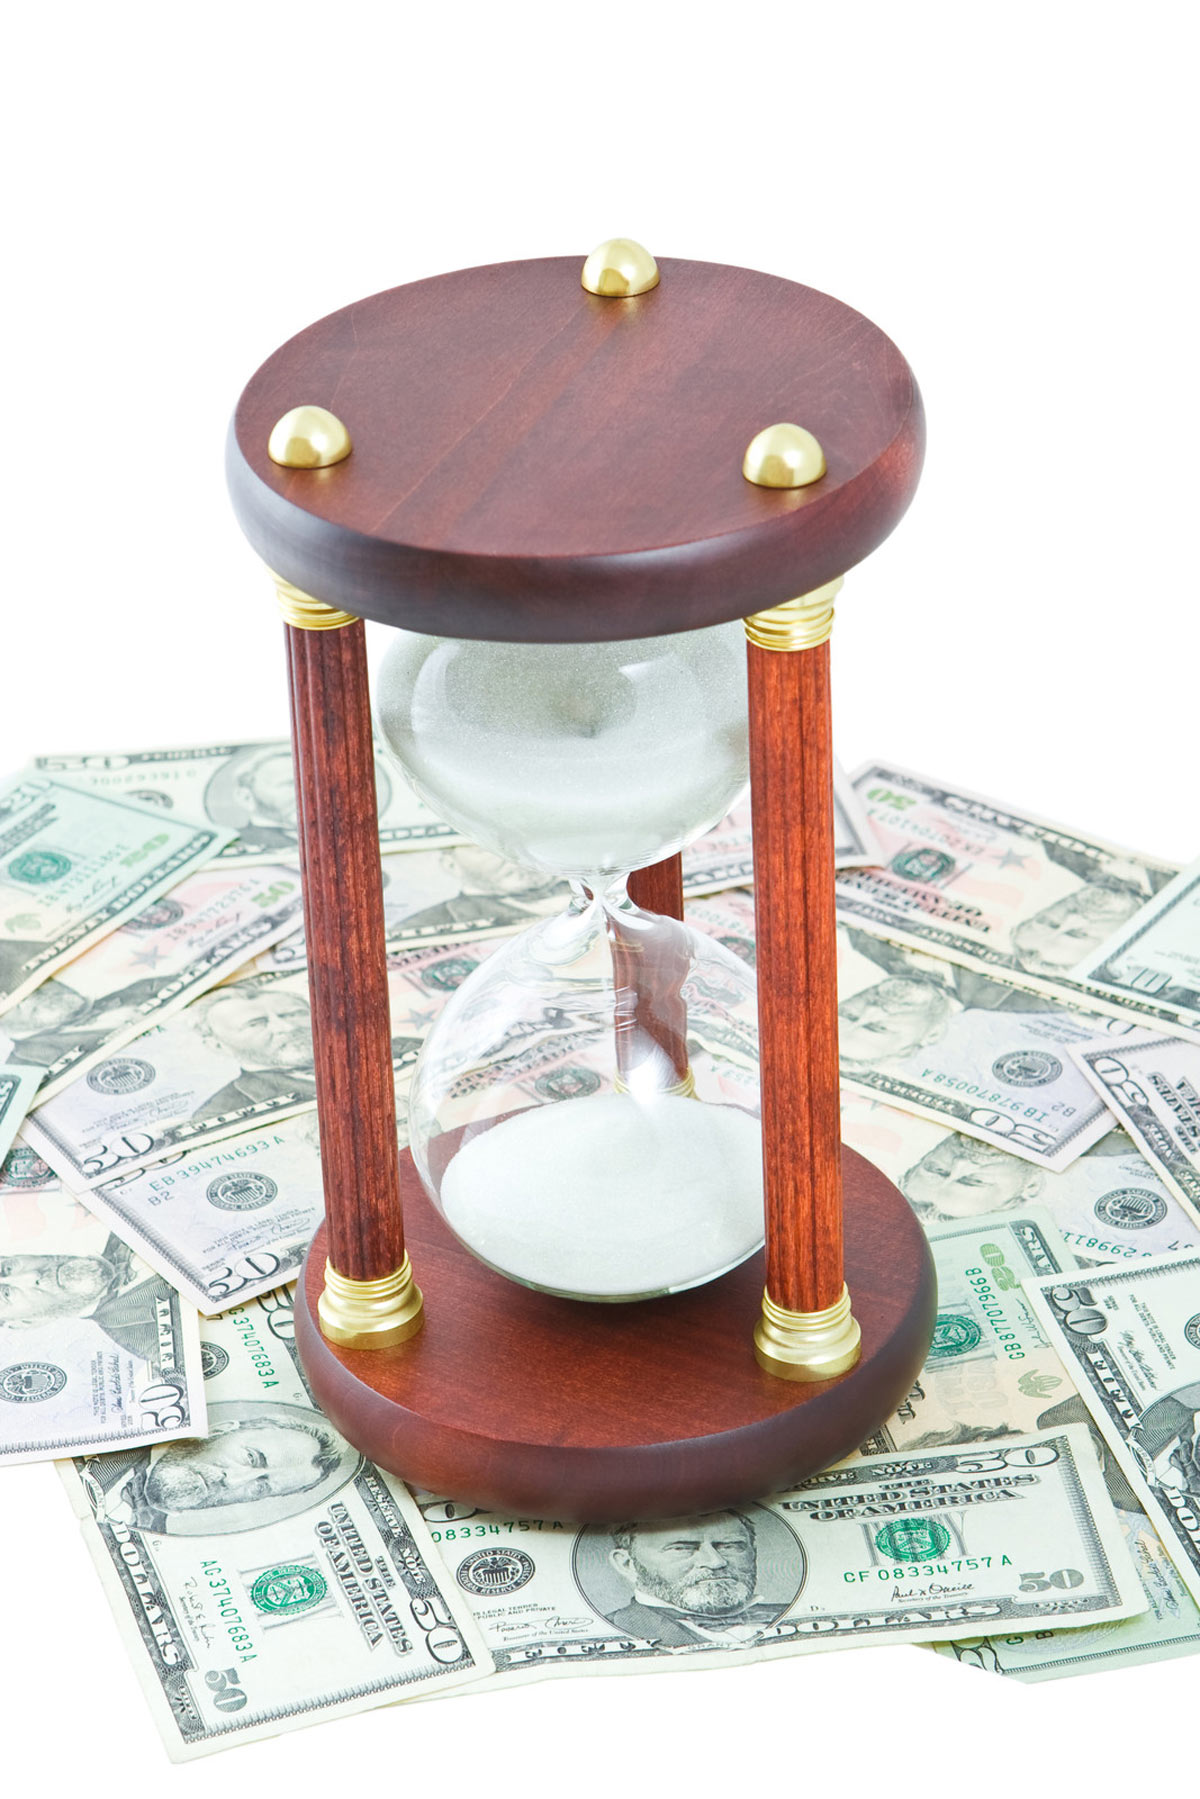 Time is money concept with fancy hourglass on top of a pile of $50 bills.